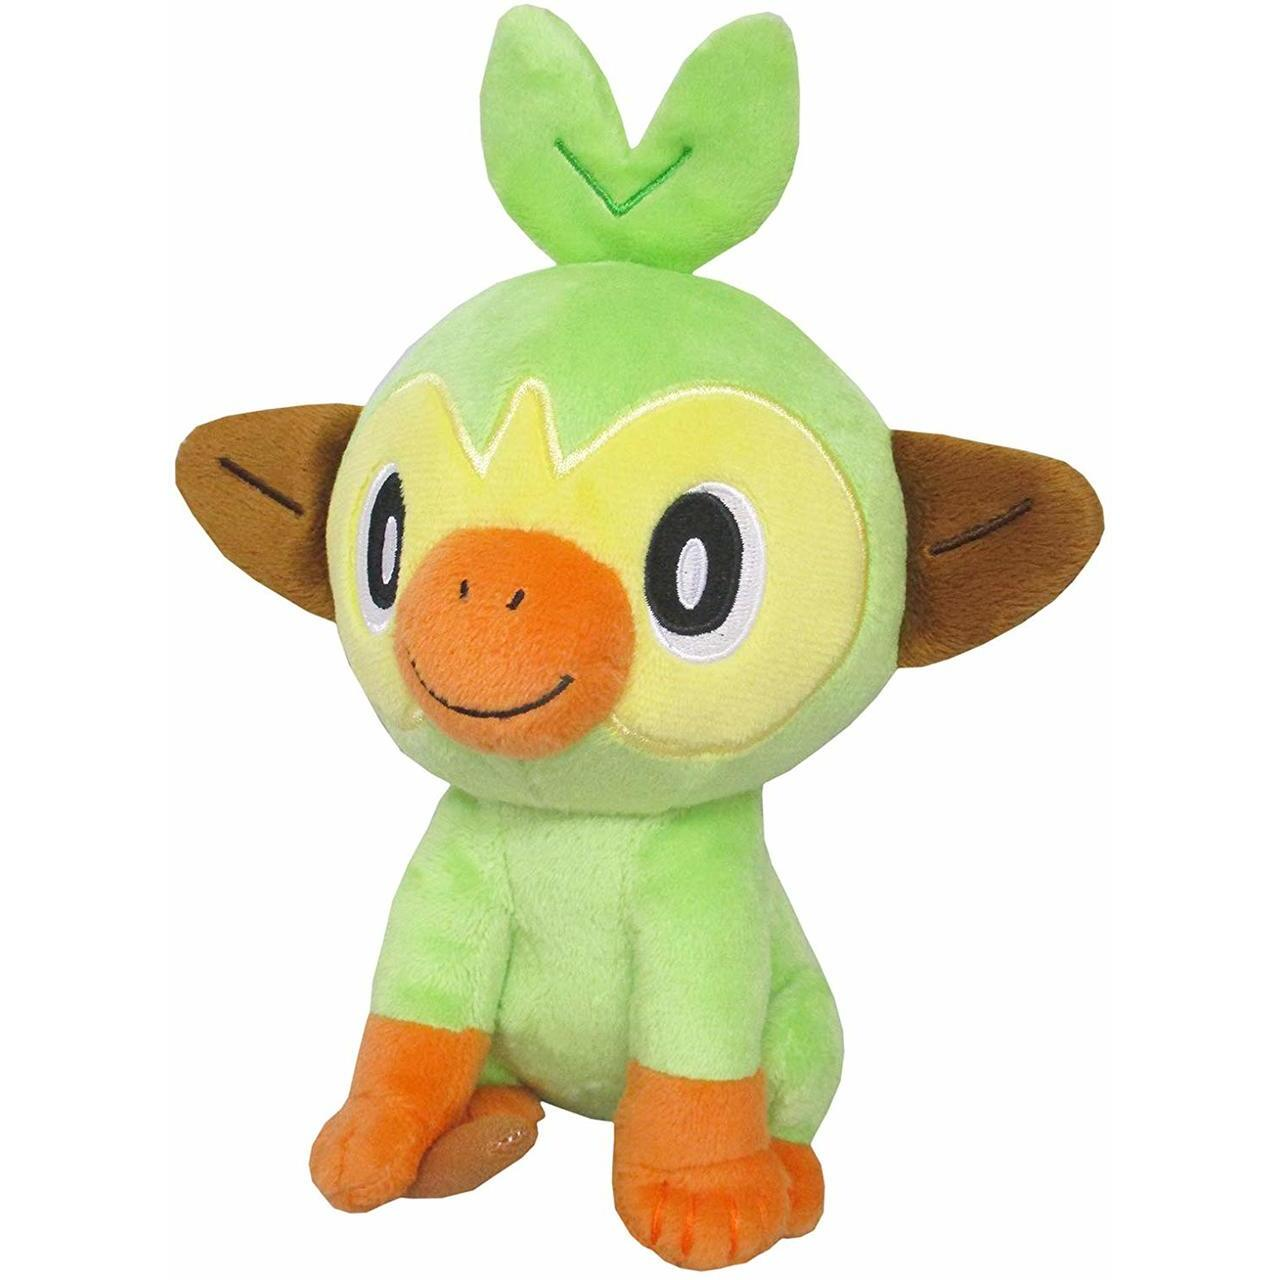 grookey-all-star-collection-plush (1)